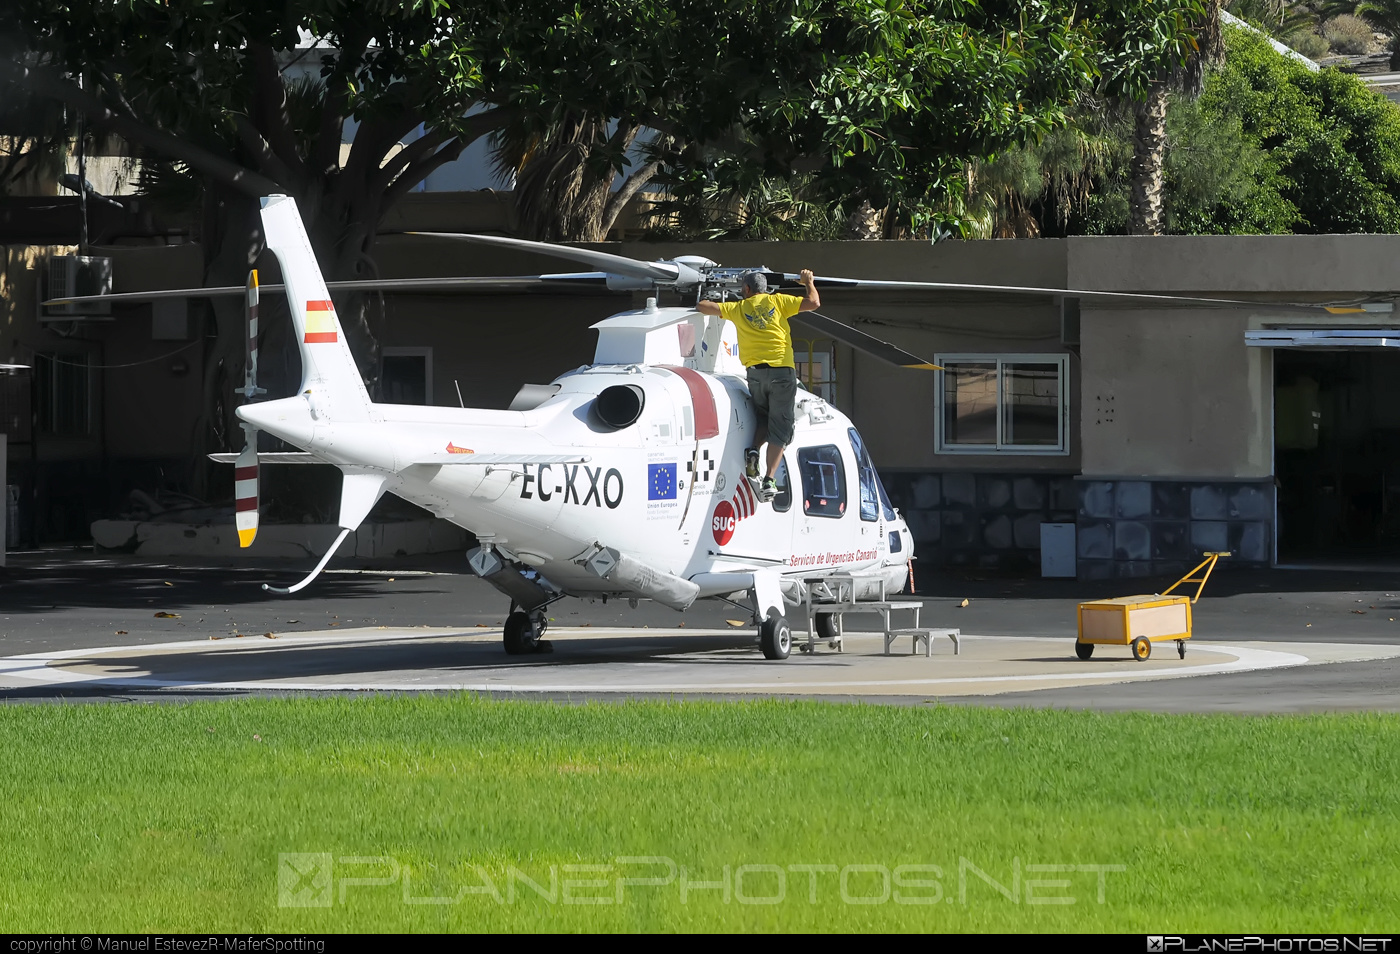 Agusta A109E Power - EC-KXO operated by Inaer #a109 #a109e #a109power #agusta #agusta109 #agustaa109 #agustaa109e